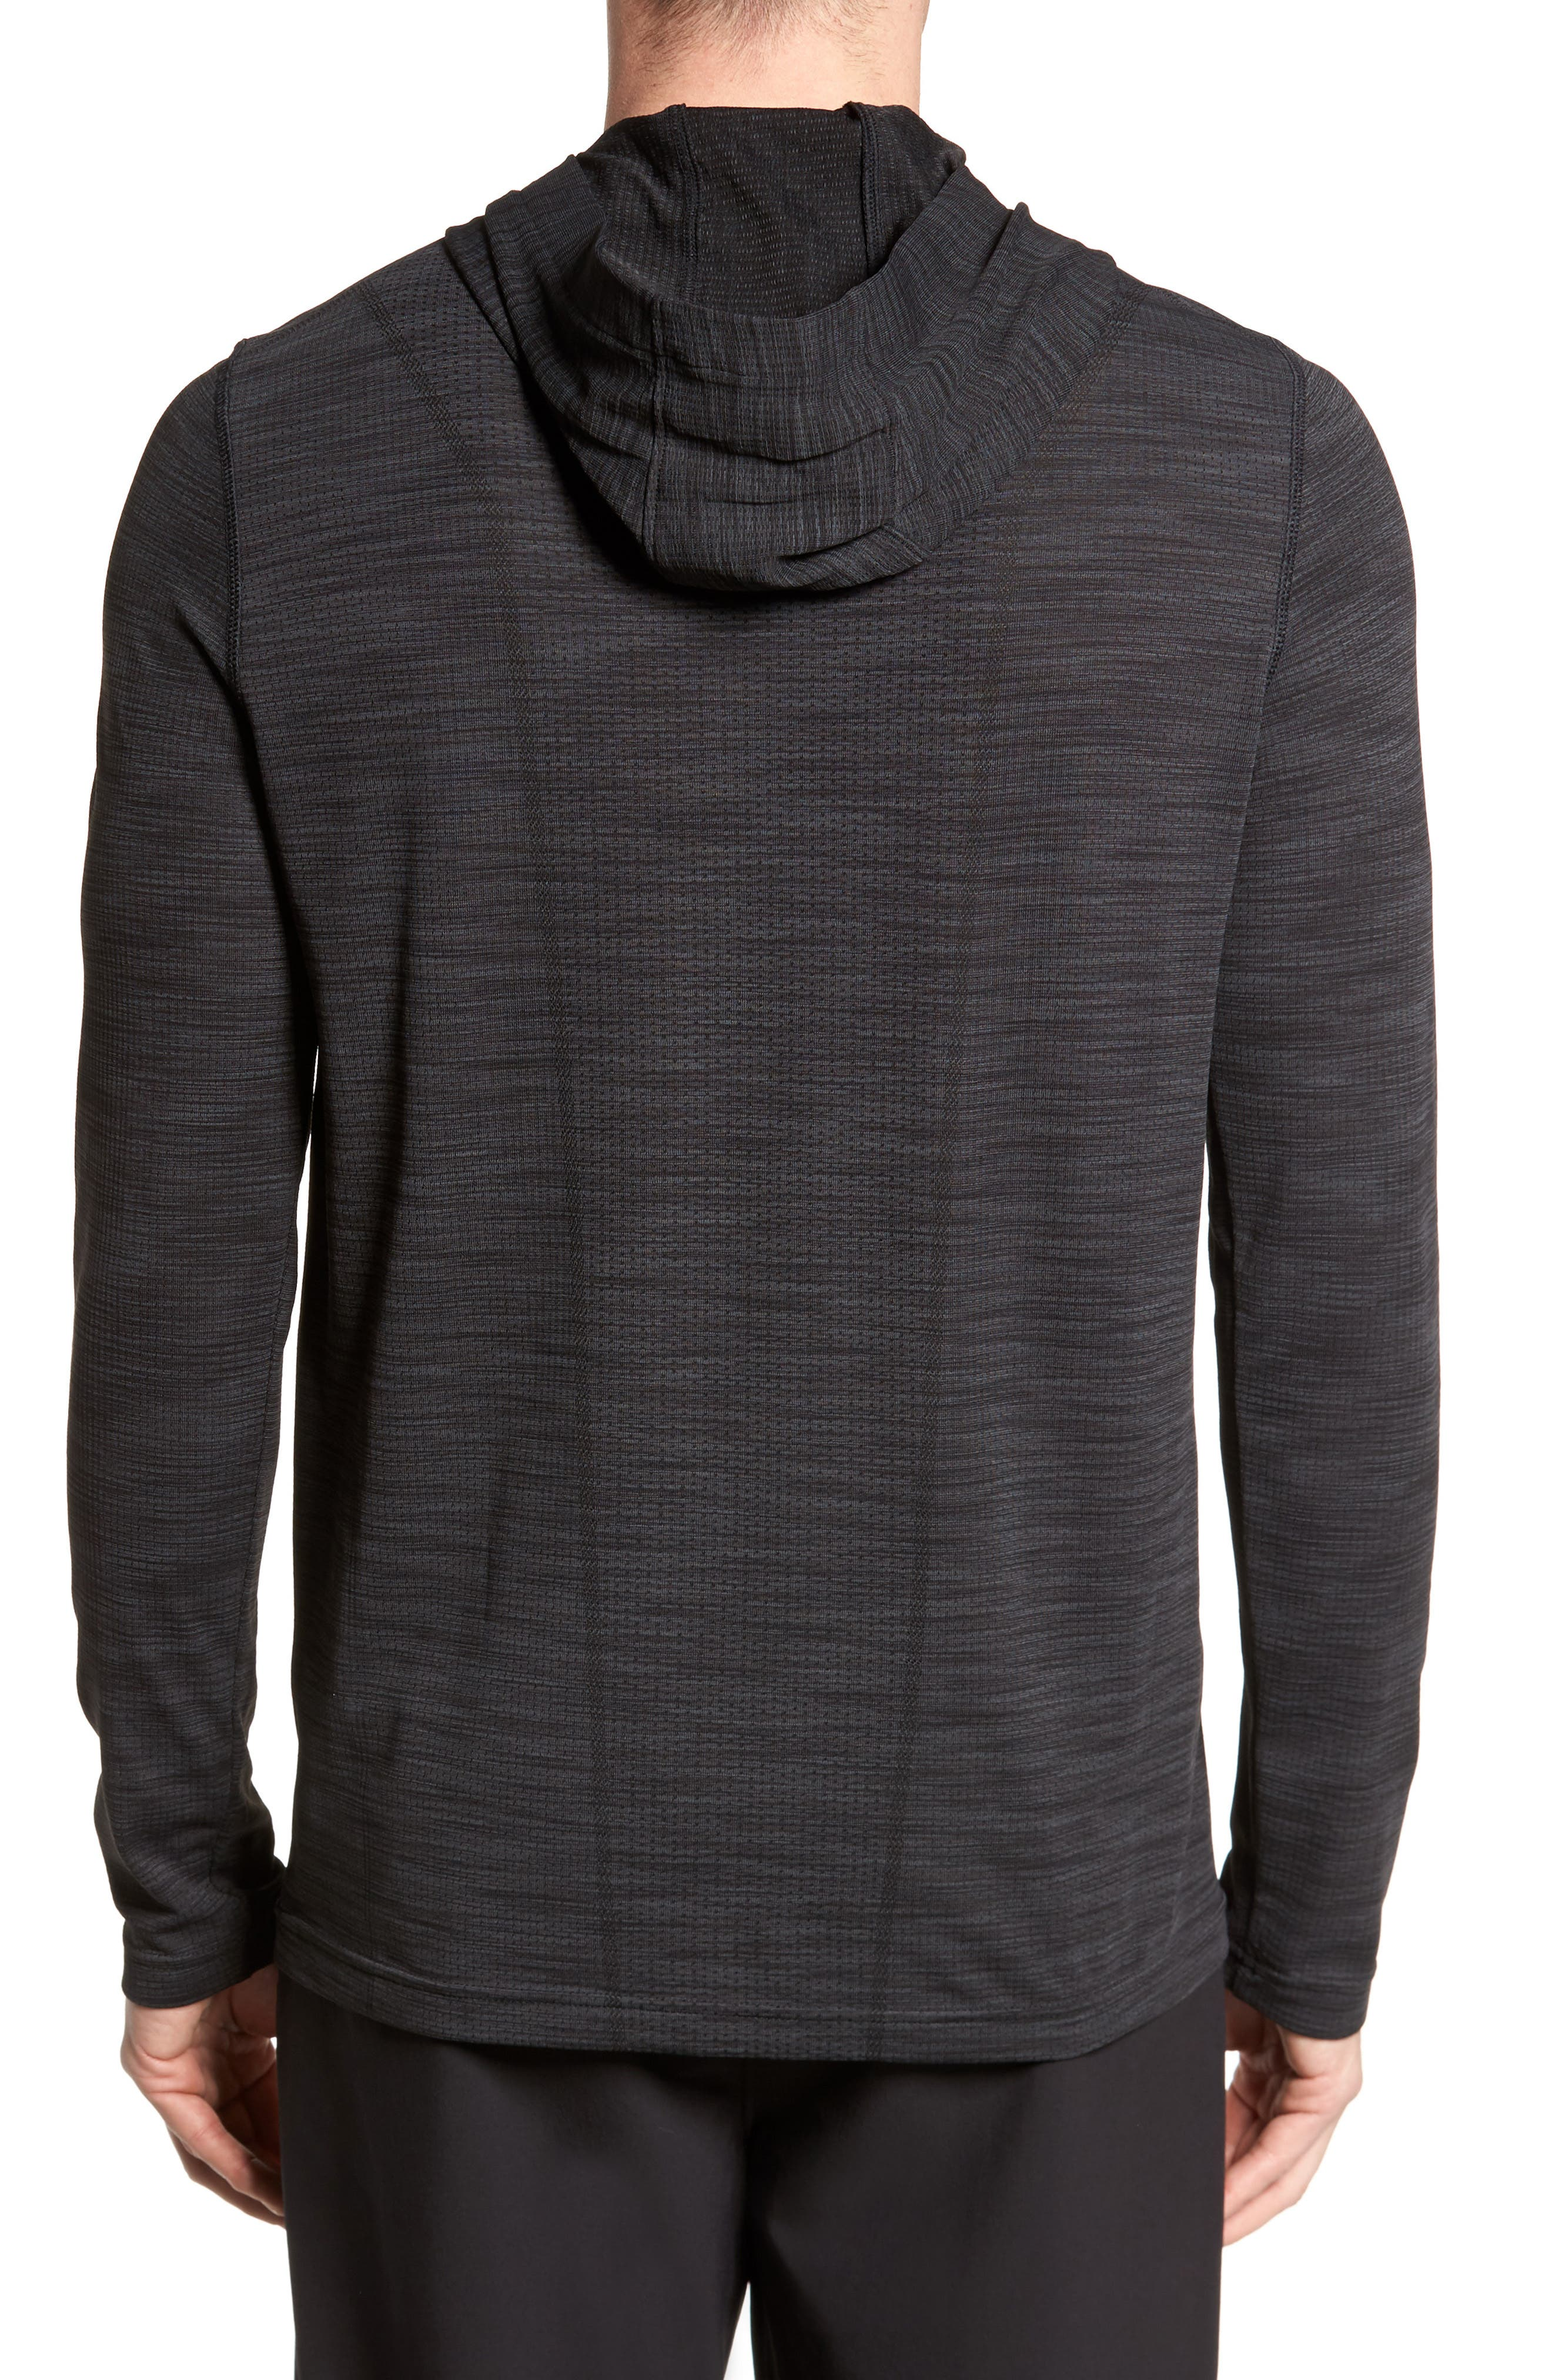 Threadbone Fitted Seamless Hoodie,                             Alternate thumbnail 2, color,                             001